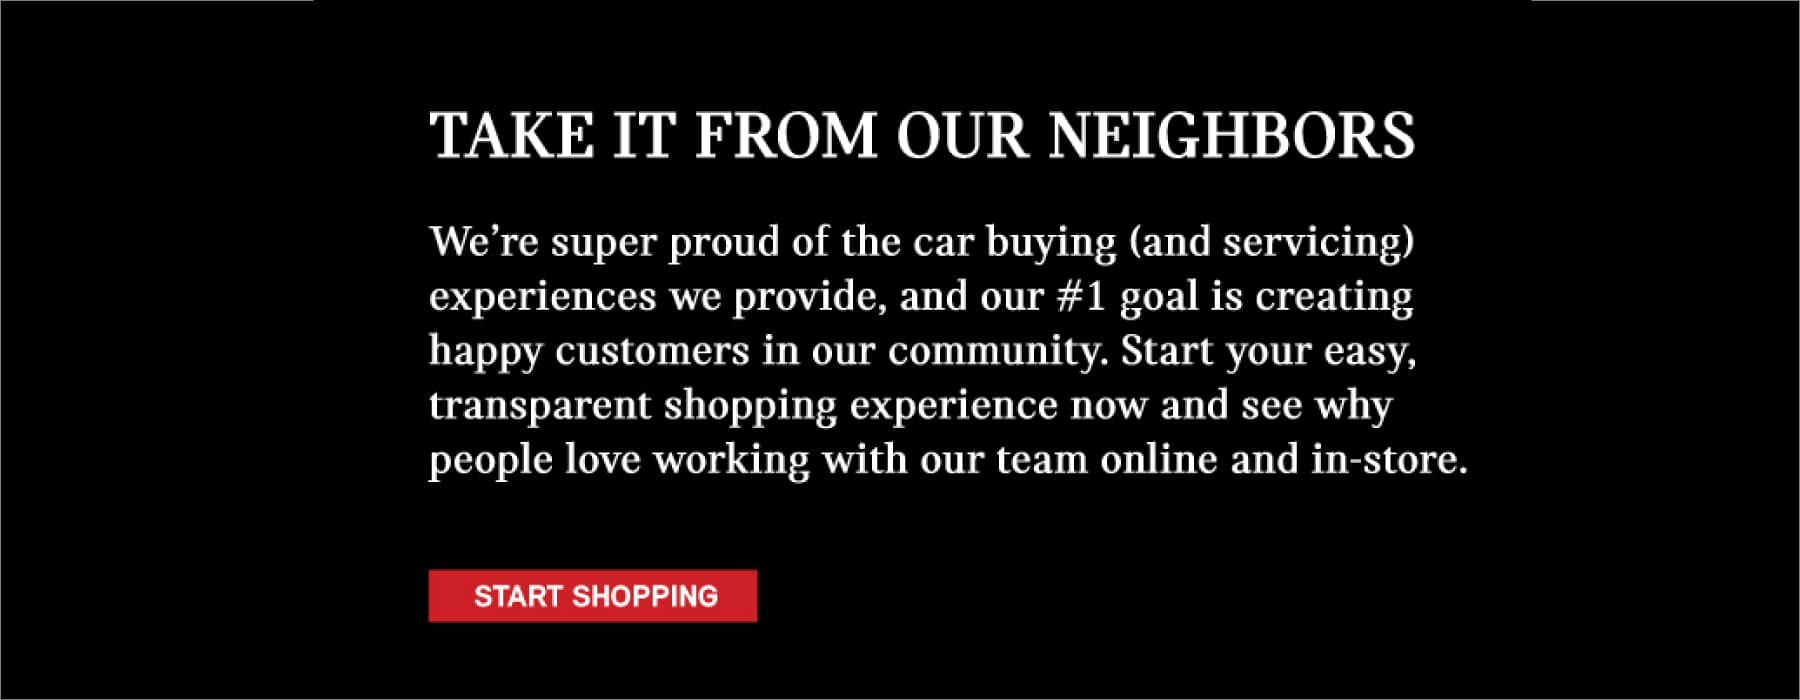 TAKE IT FROM OUR NEIGHBORS. We're super proud of the car buying (and servicing) experiences we provide, and our #1 goal is creating happy customers in our community. Start your easy, transparent shopping experience now and see why people love working with our team online and in-store.